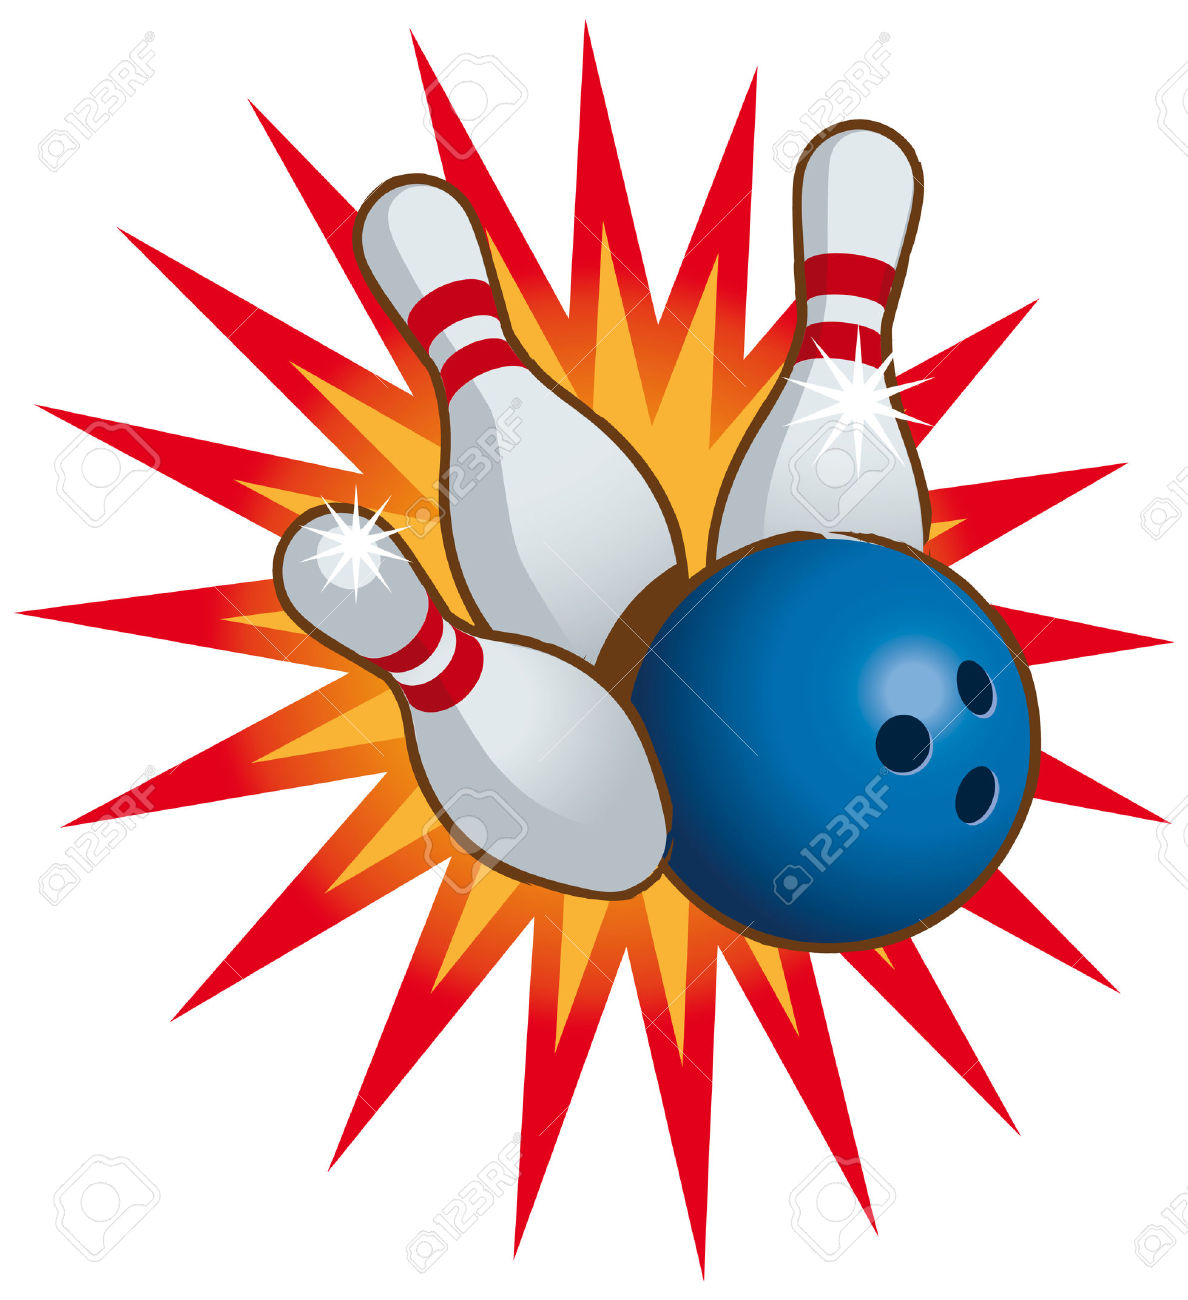 Bowling pin and ball clipart » Clipart Station.